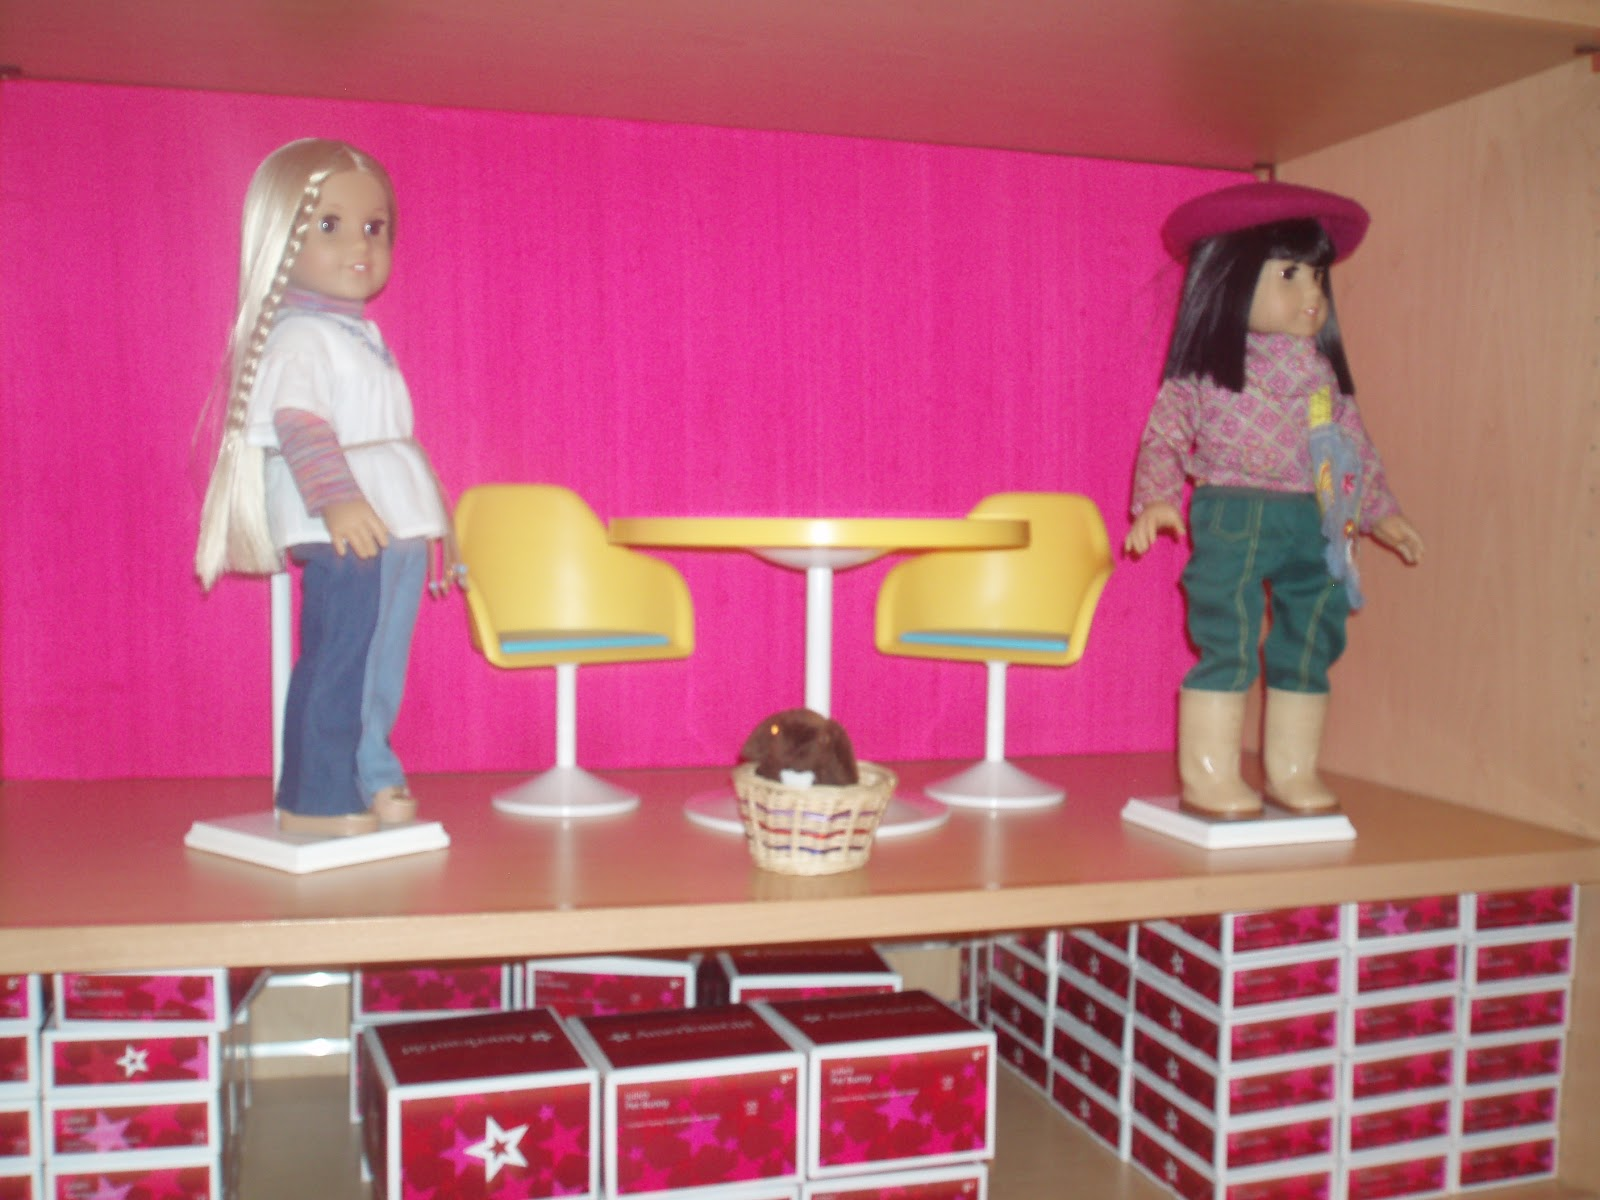 Here s Julie with her BFF Ivy and her pet bunny  Check out the ultra cool  kitchen table and chairs  I dig the sunny yellow color  but I remember lots  of. American Girl Spotlight  Julie